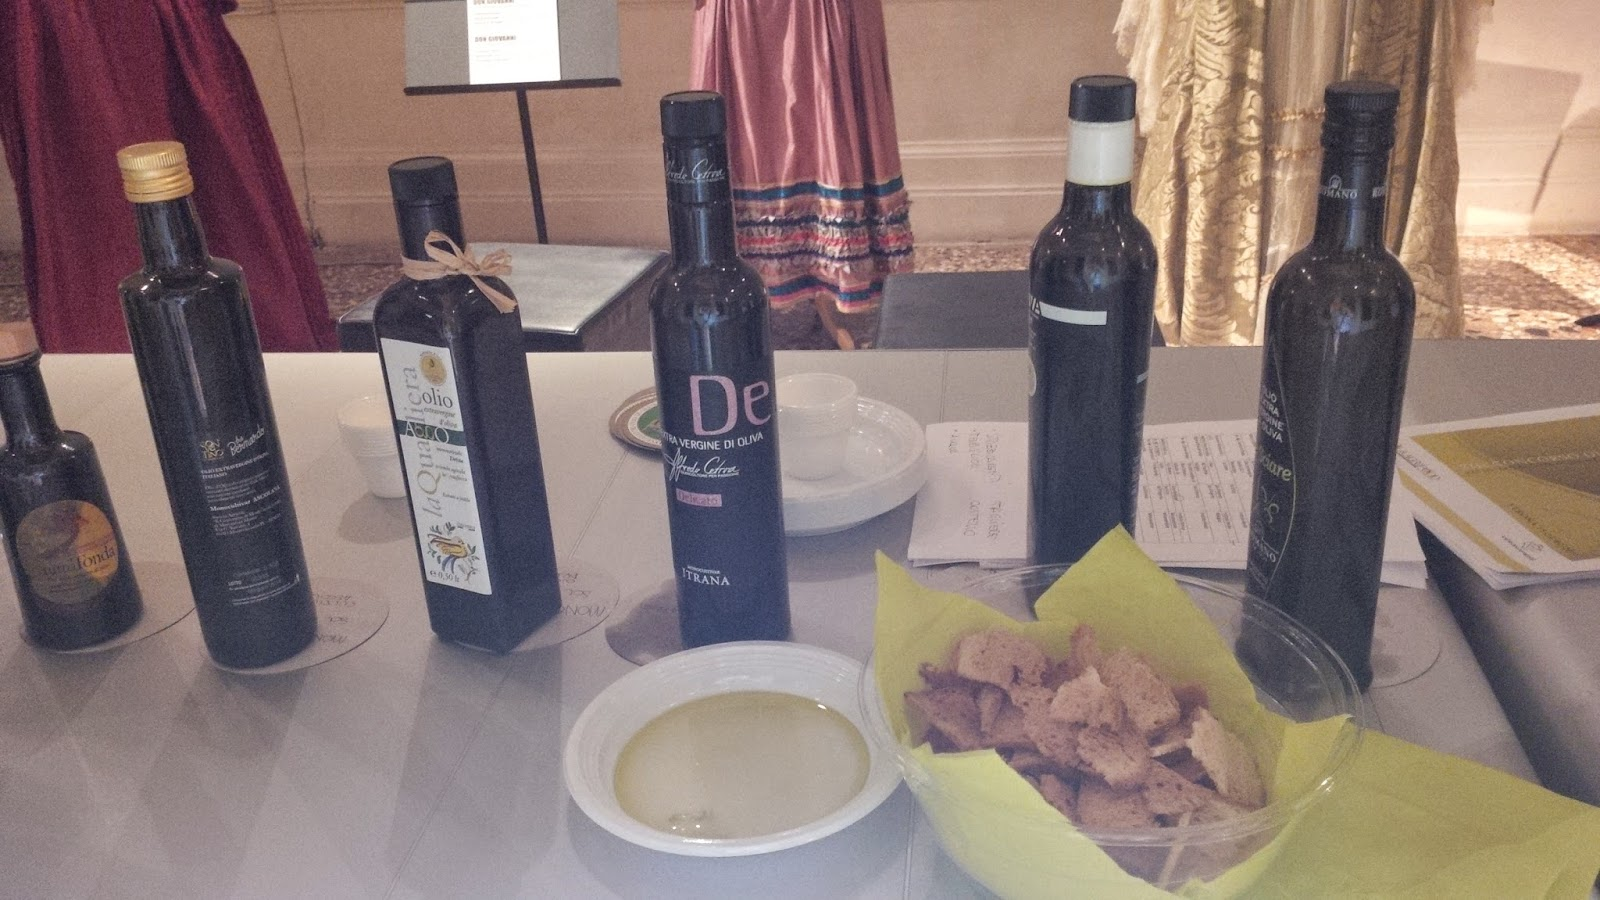 Award-winning bottles of Italian olive oils at Taste of Christmas event in AMO, Verona